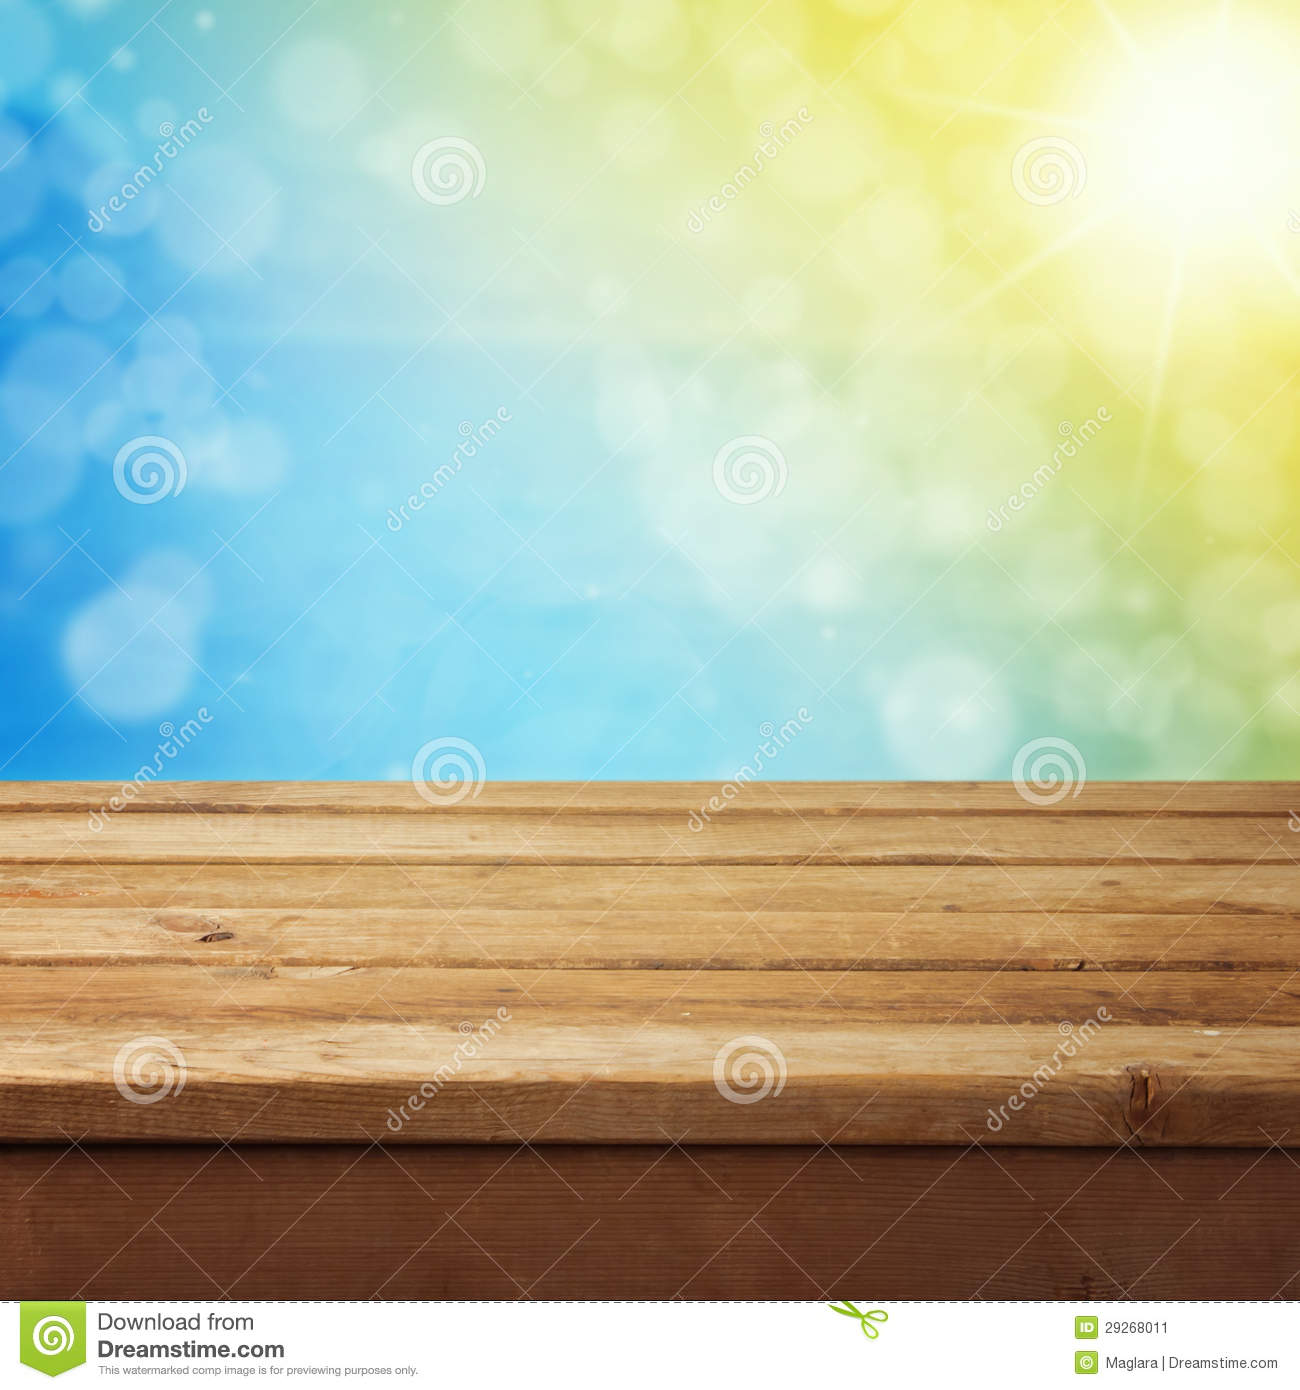 Background With Wooden Deck Table Stock Image - Image: 29268011